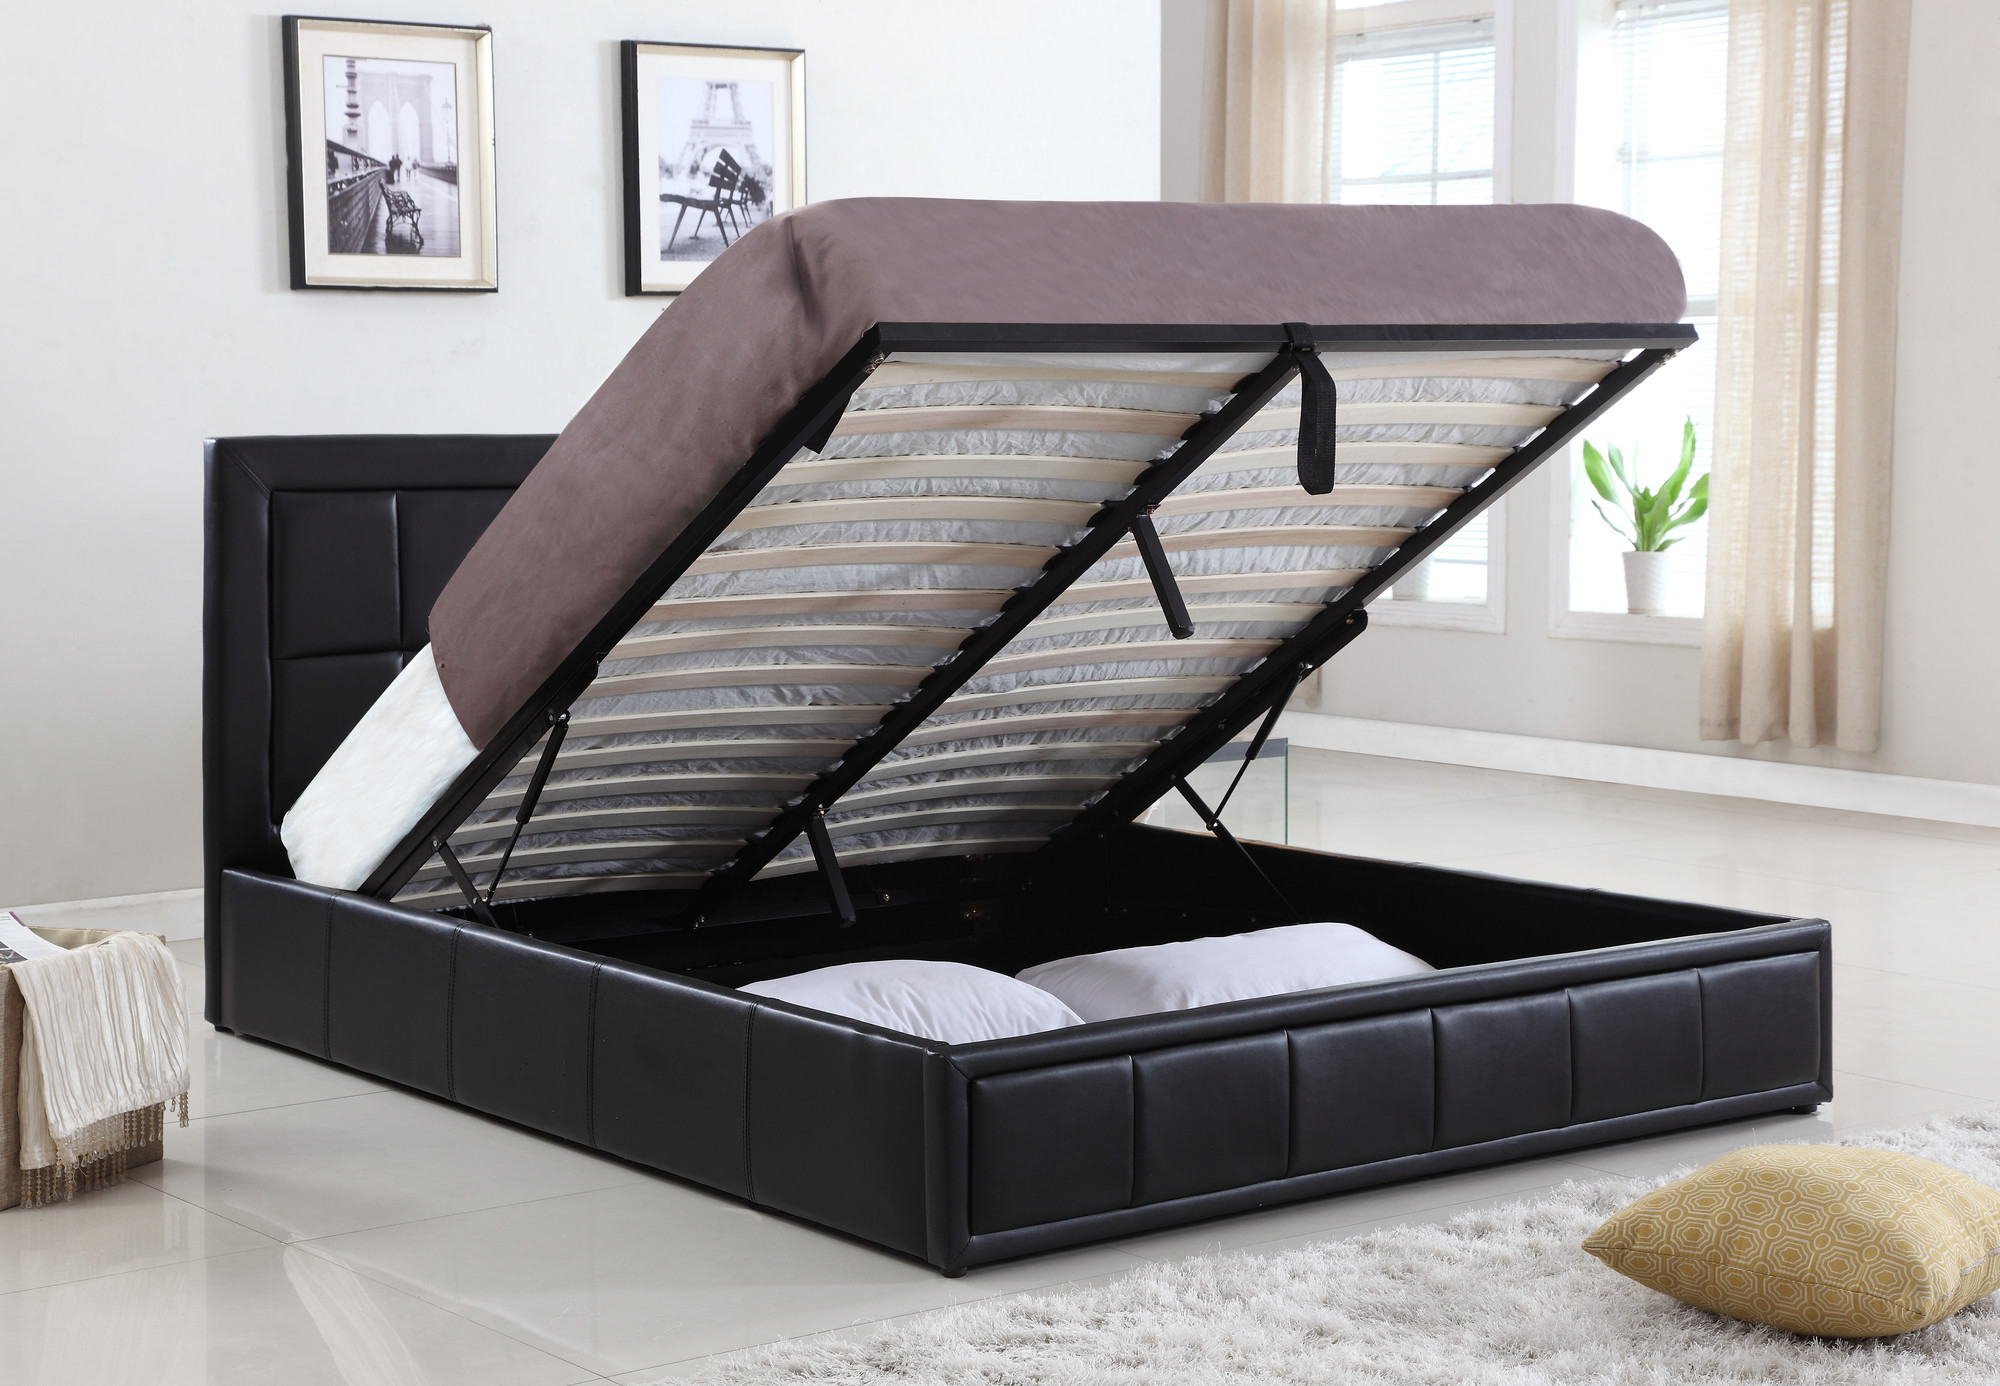 Gas Lift Queen Beds New Pu Leather Queen Size Gas Lift Storage Bed Ebay